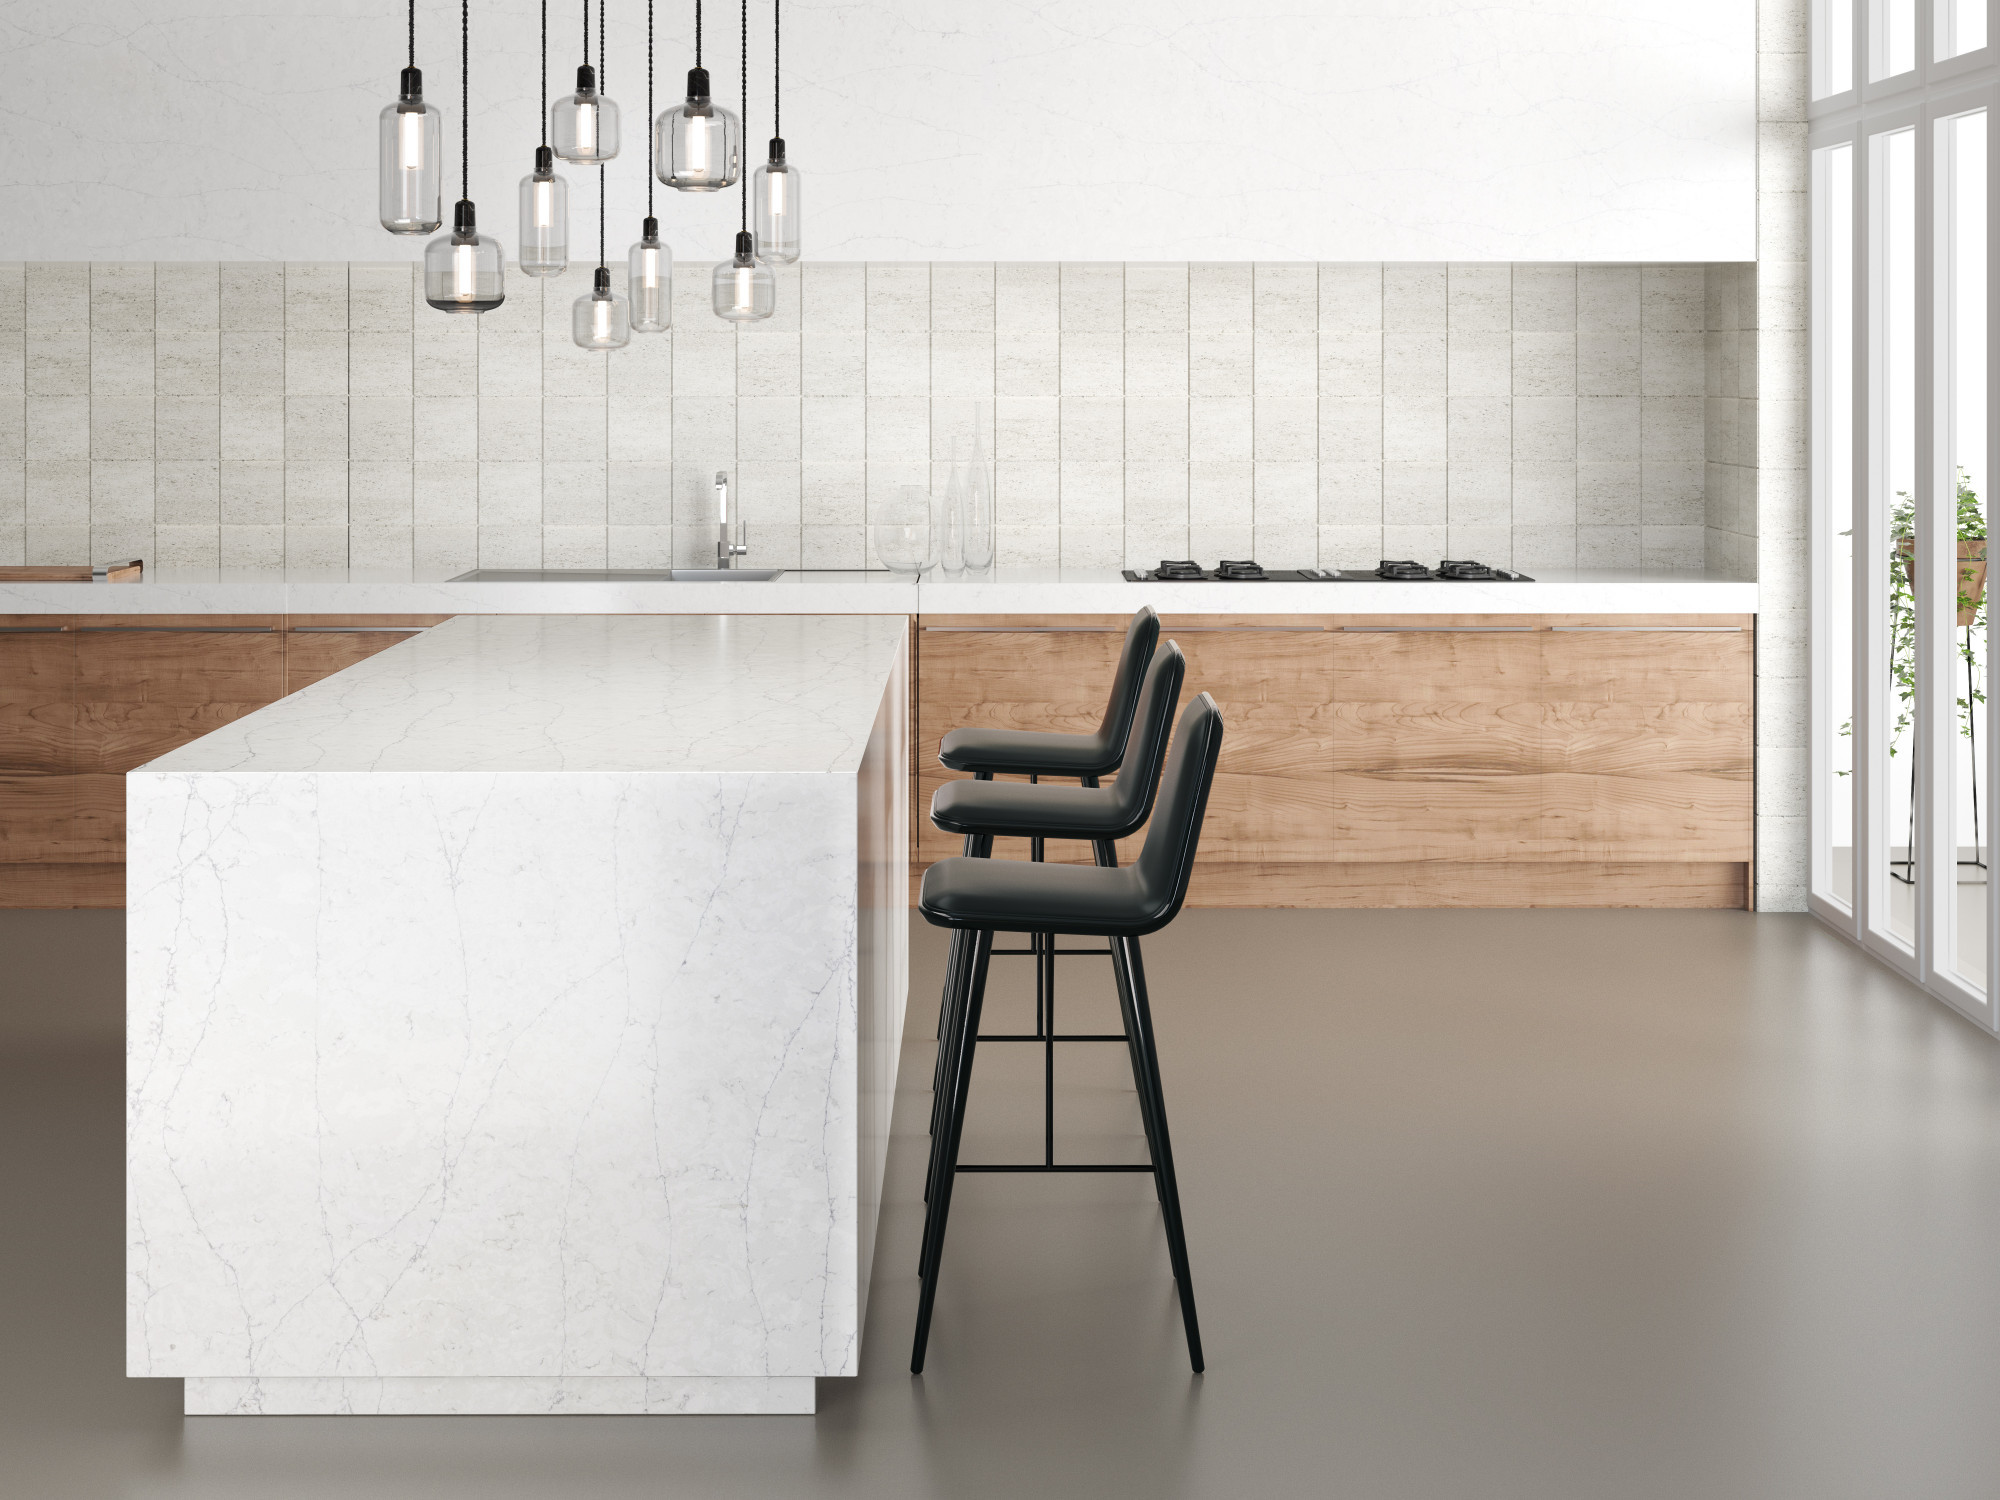 Pearl Jasmine quartz kitchen island by Silestone